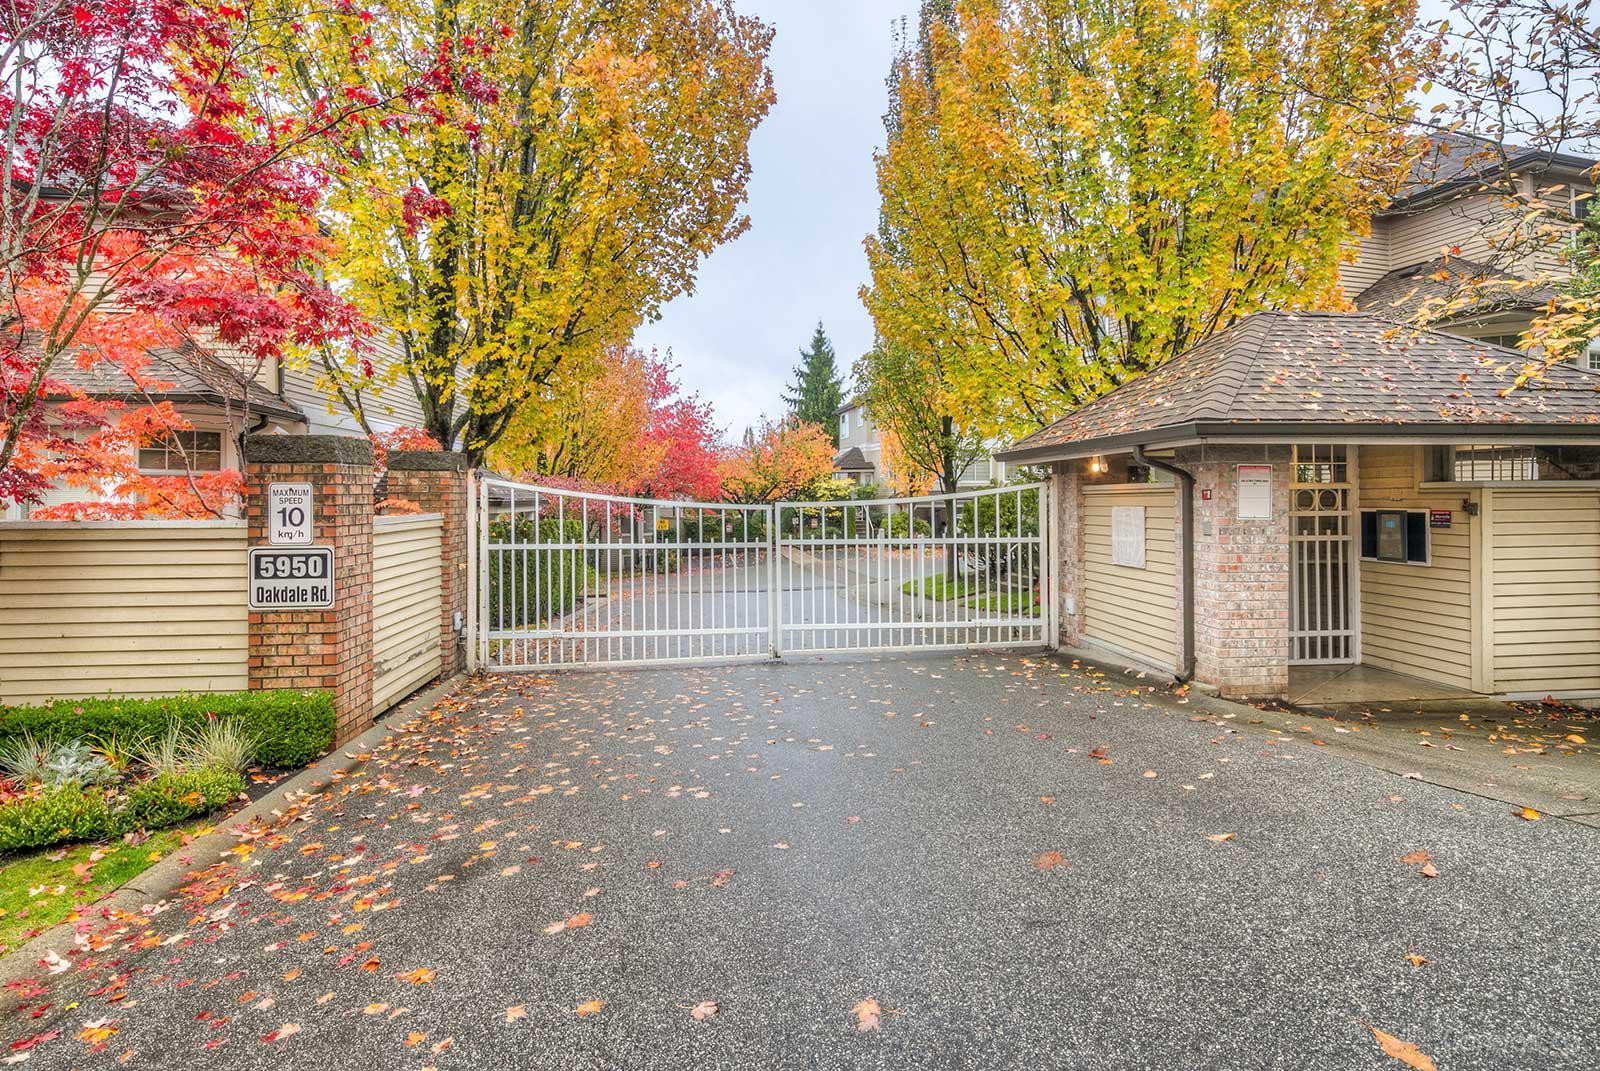 Heathercrest at 5950 Oakdale Rd, Burnaby 0